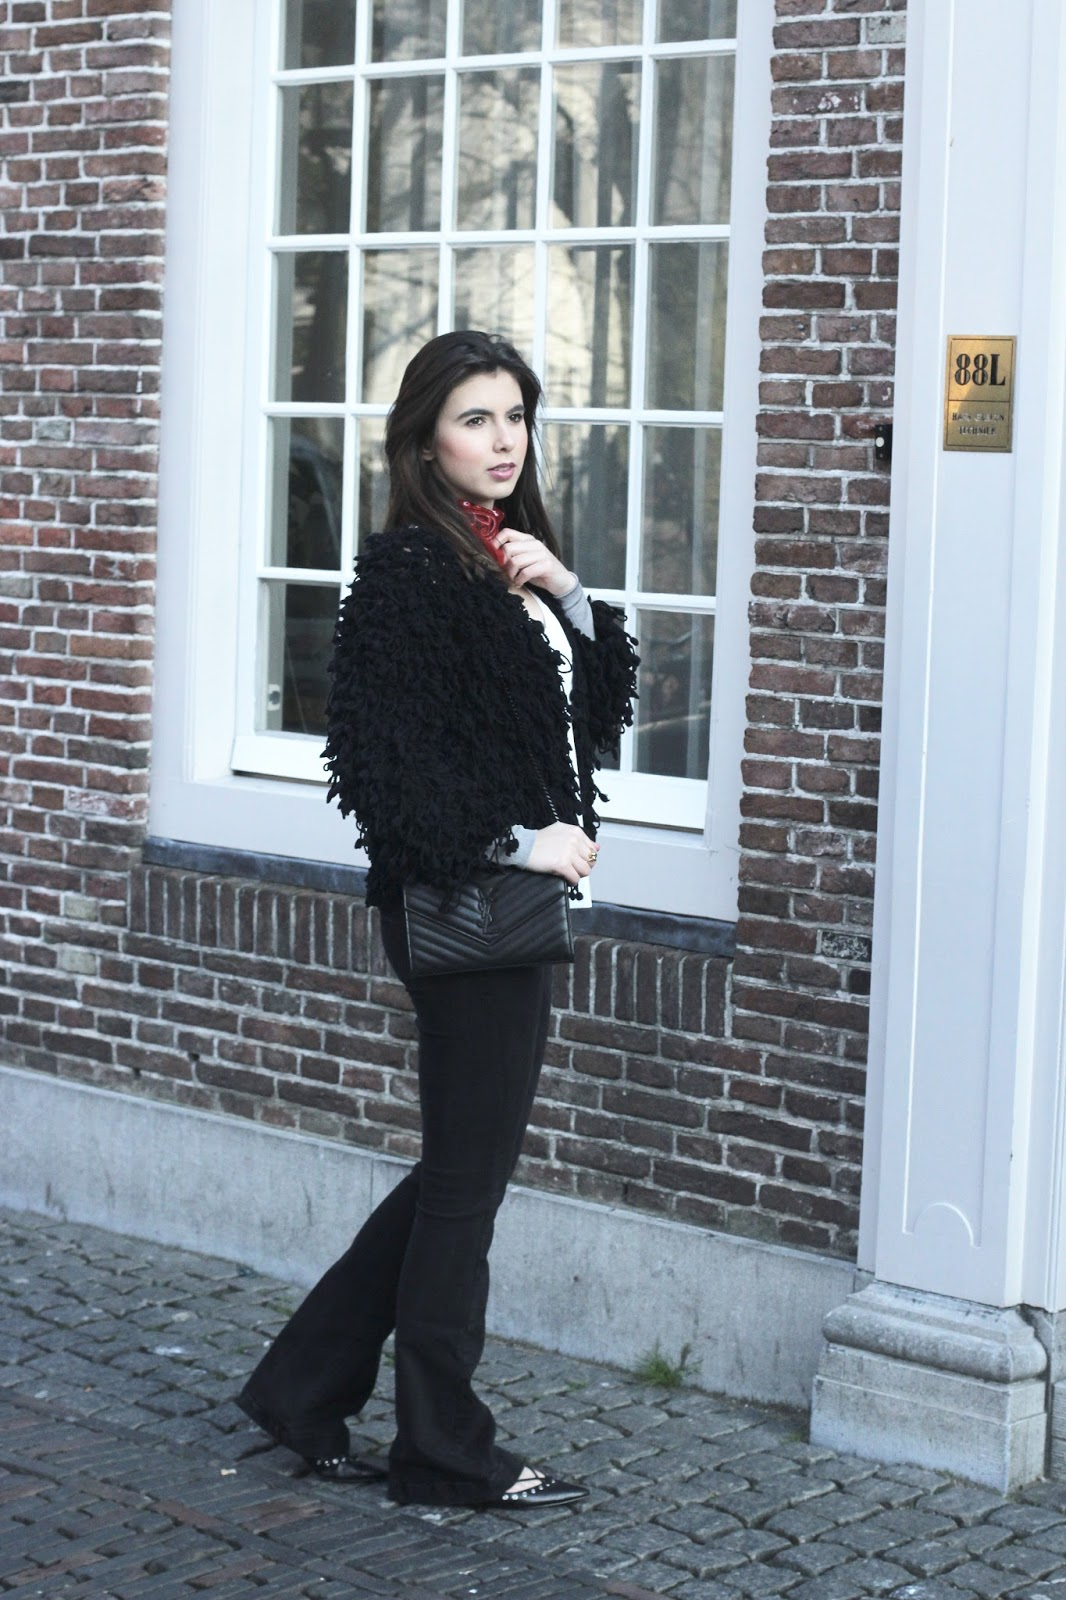 d1729e439582 Arifashionthread - Luxembourg Fashion and Lifestyle Blog  February 2016